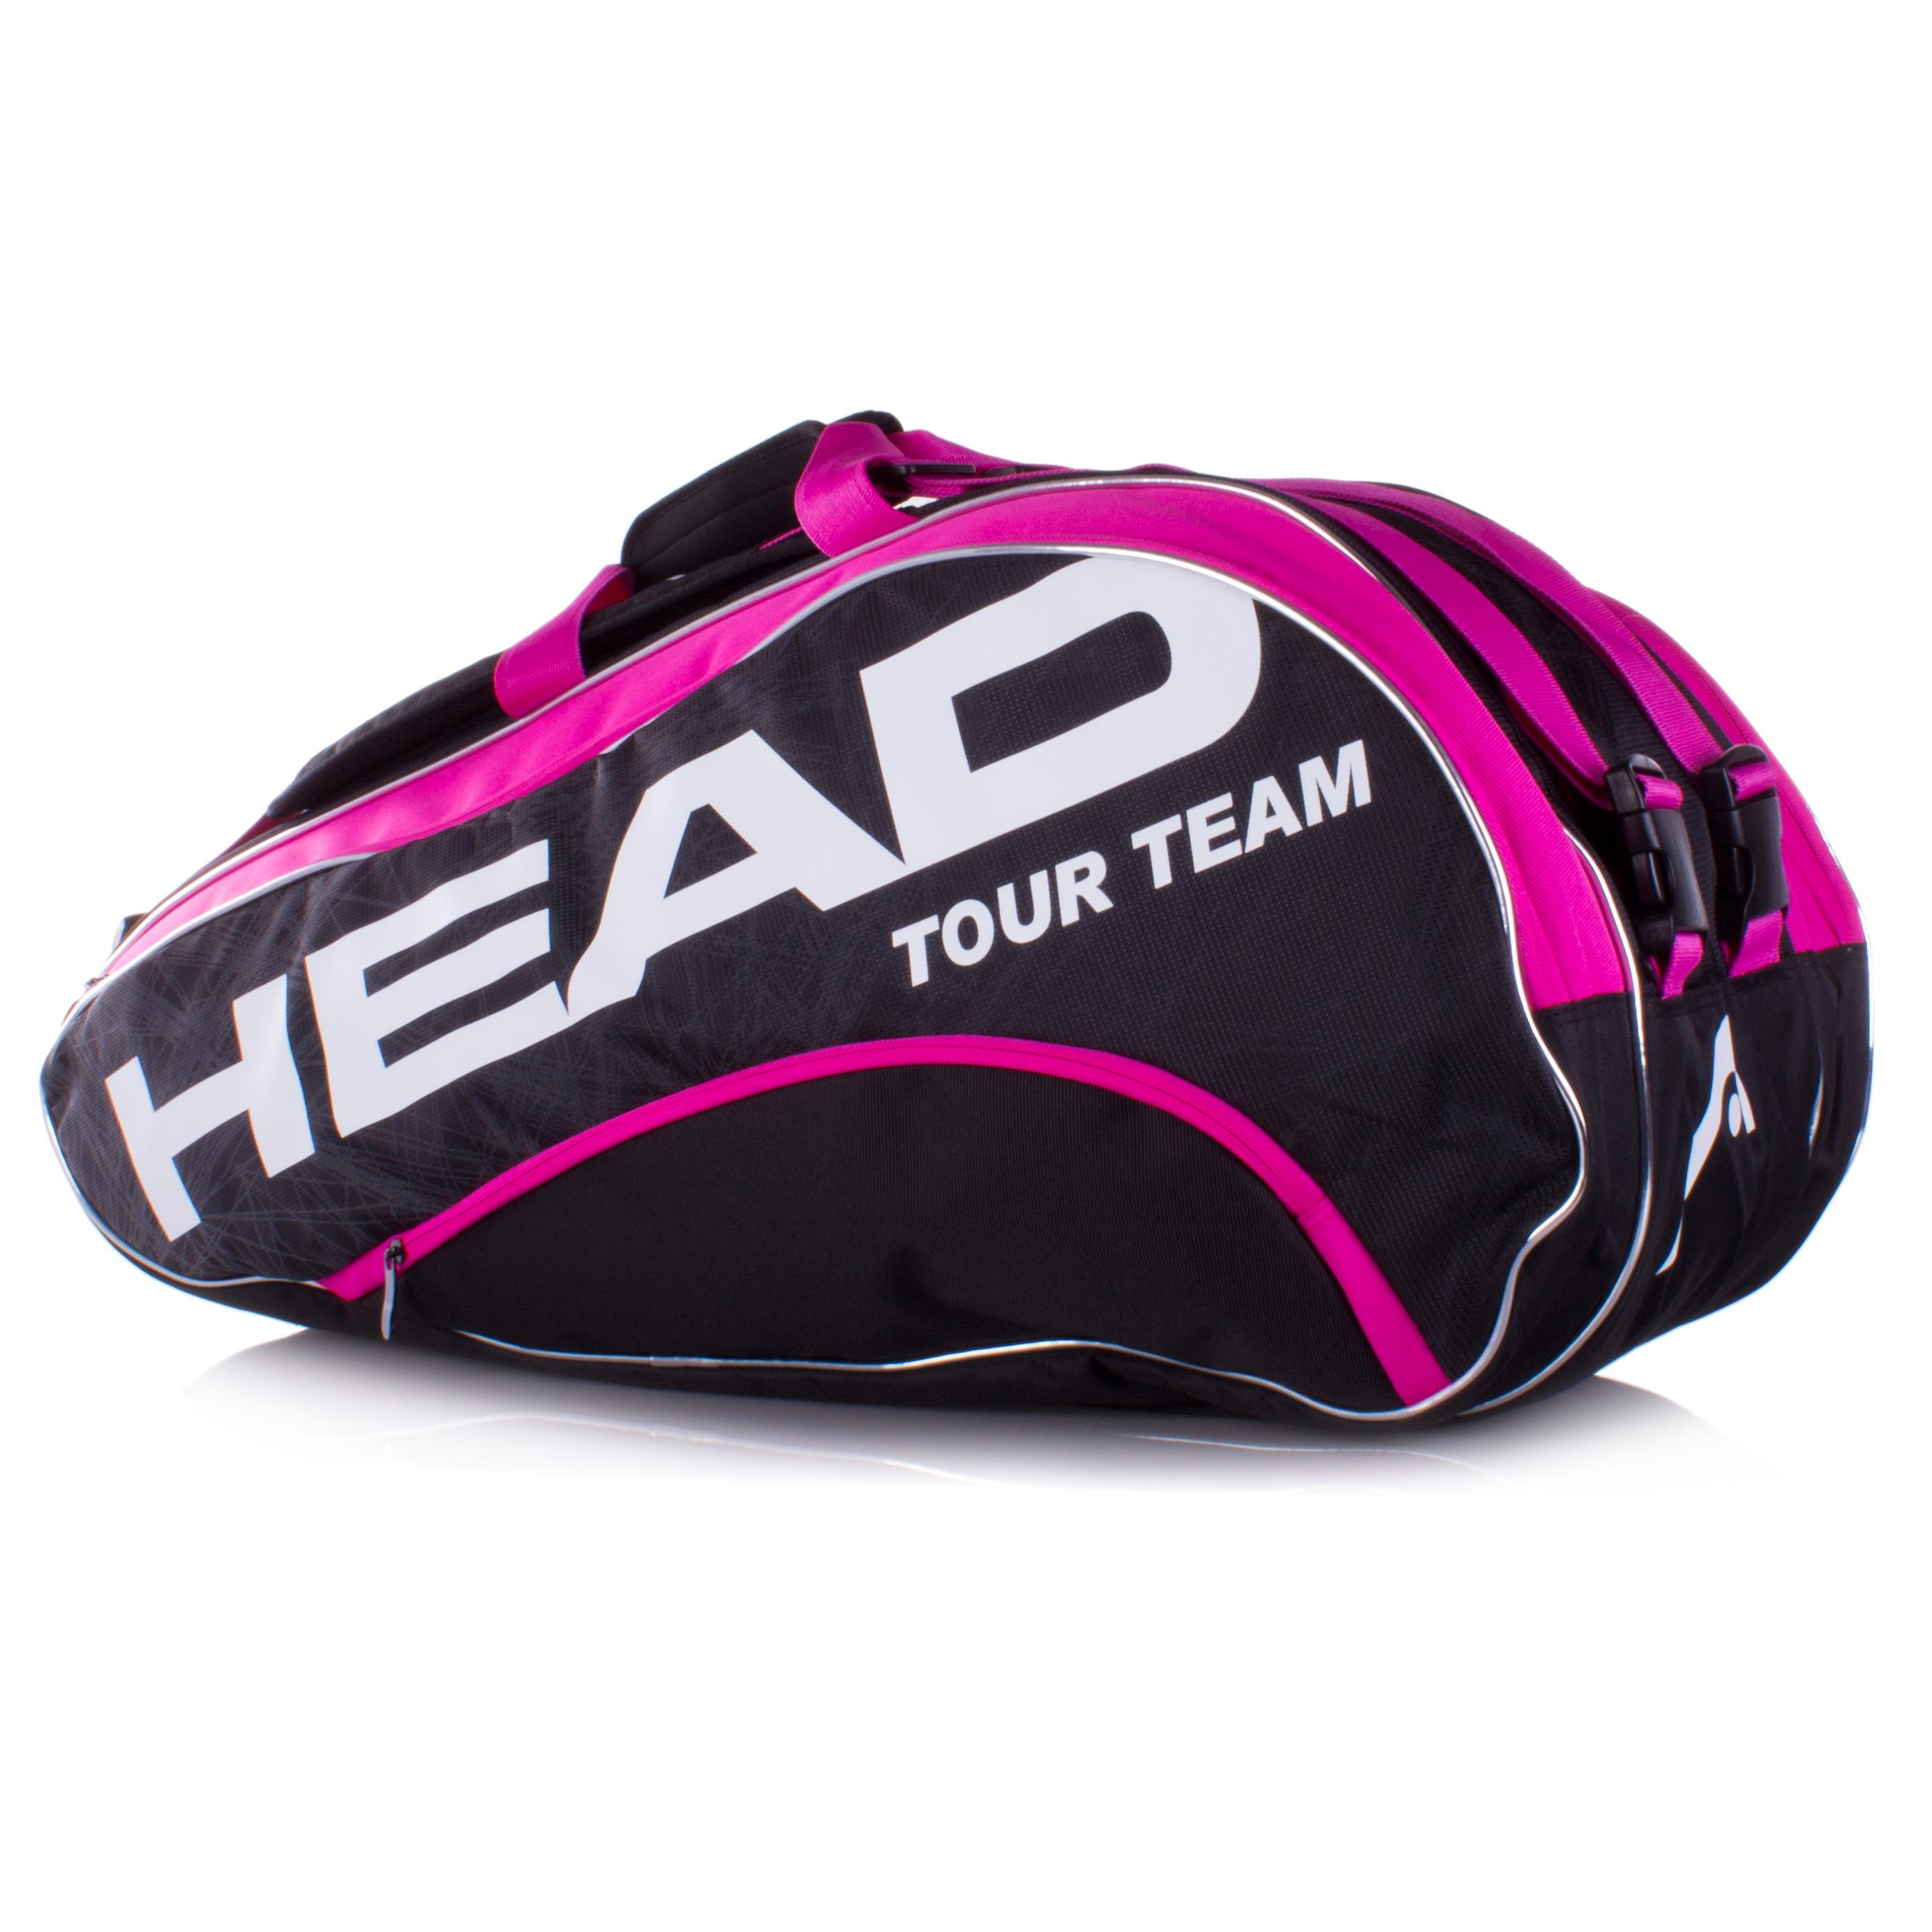 tennis plaza tennis racquets at tennis plaza your